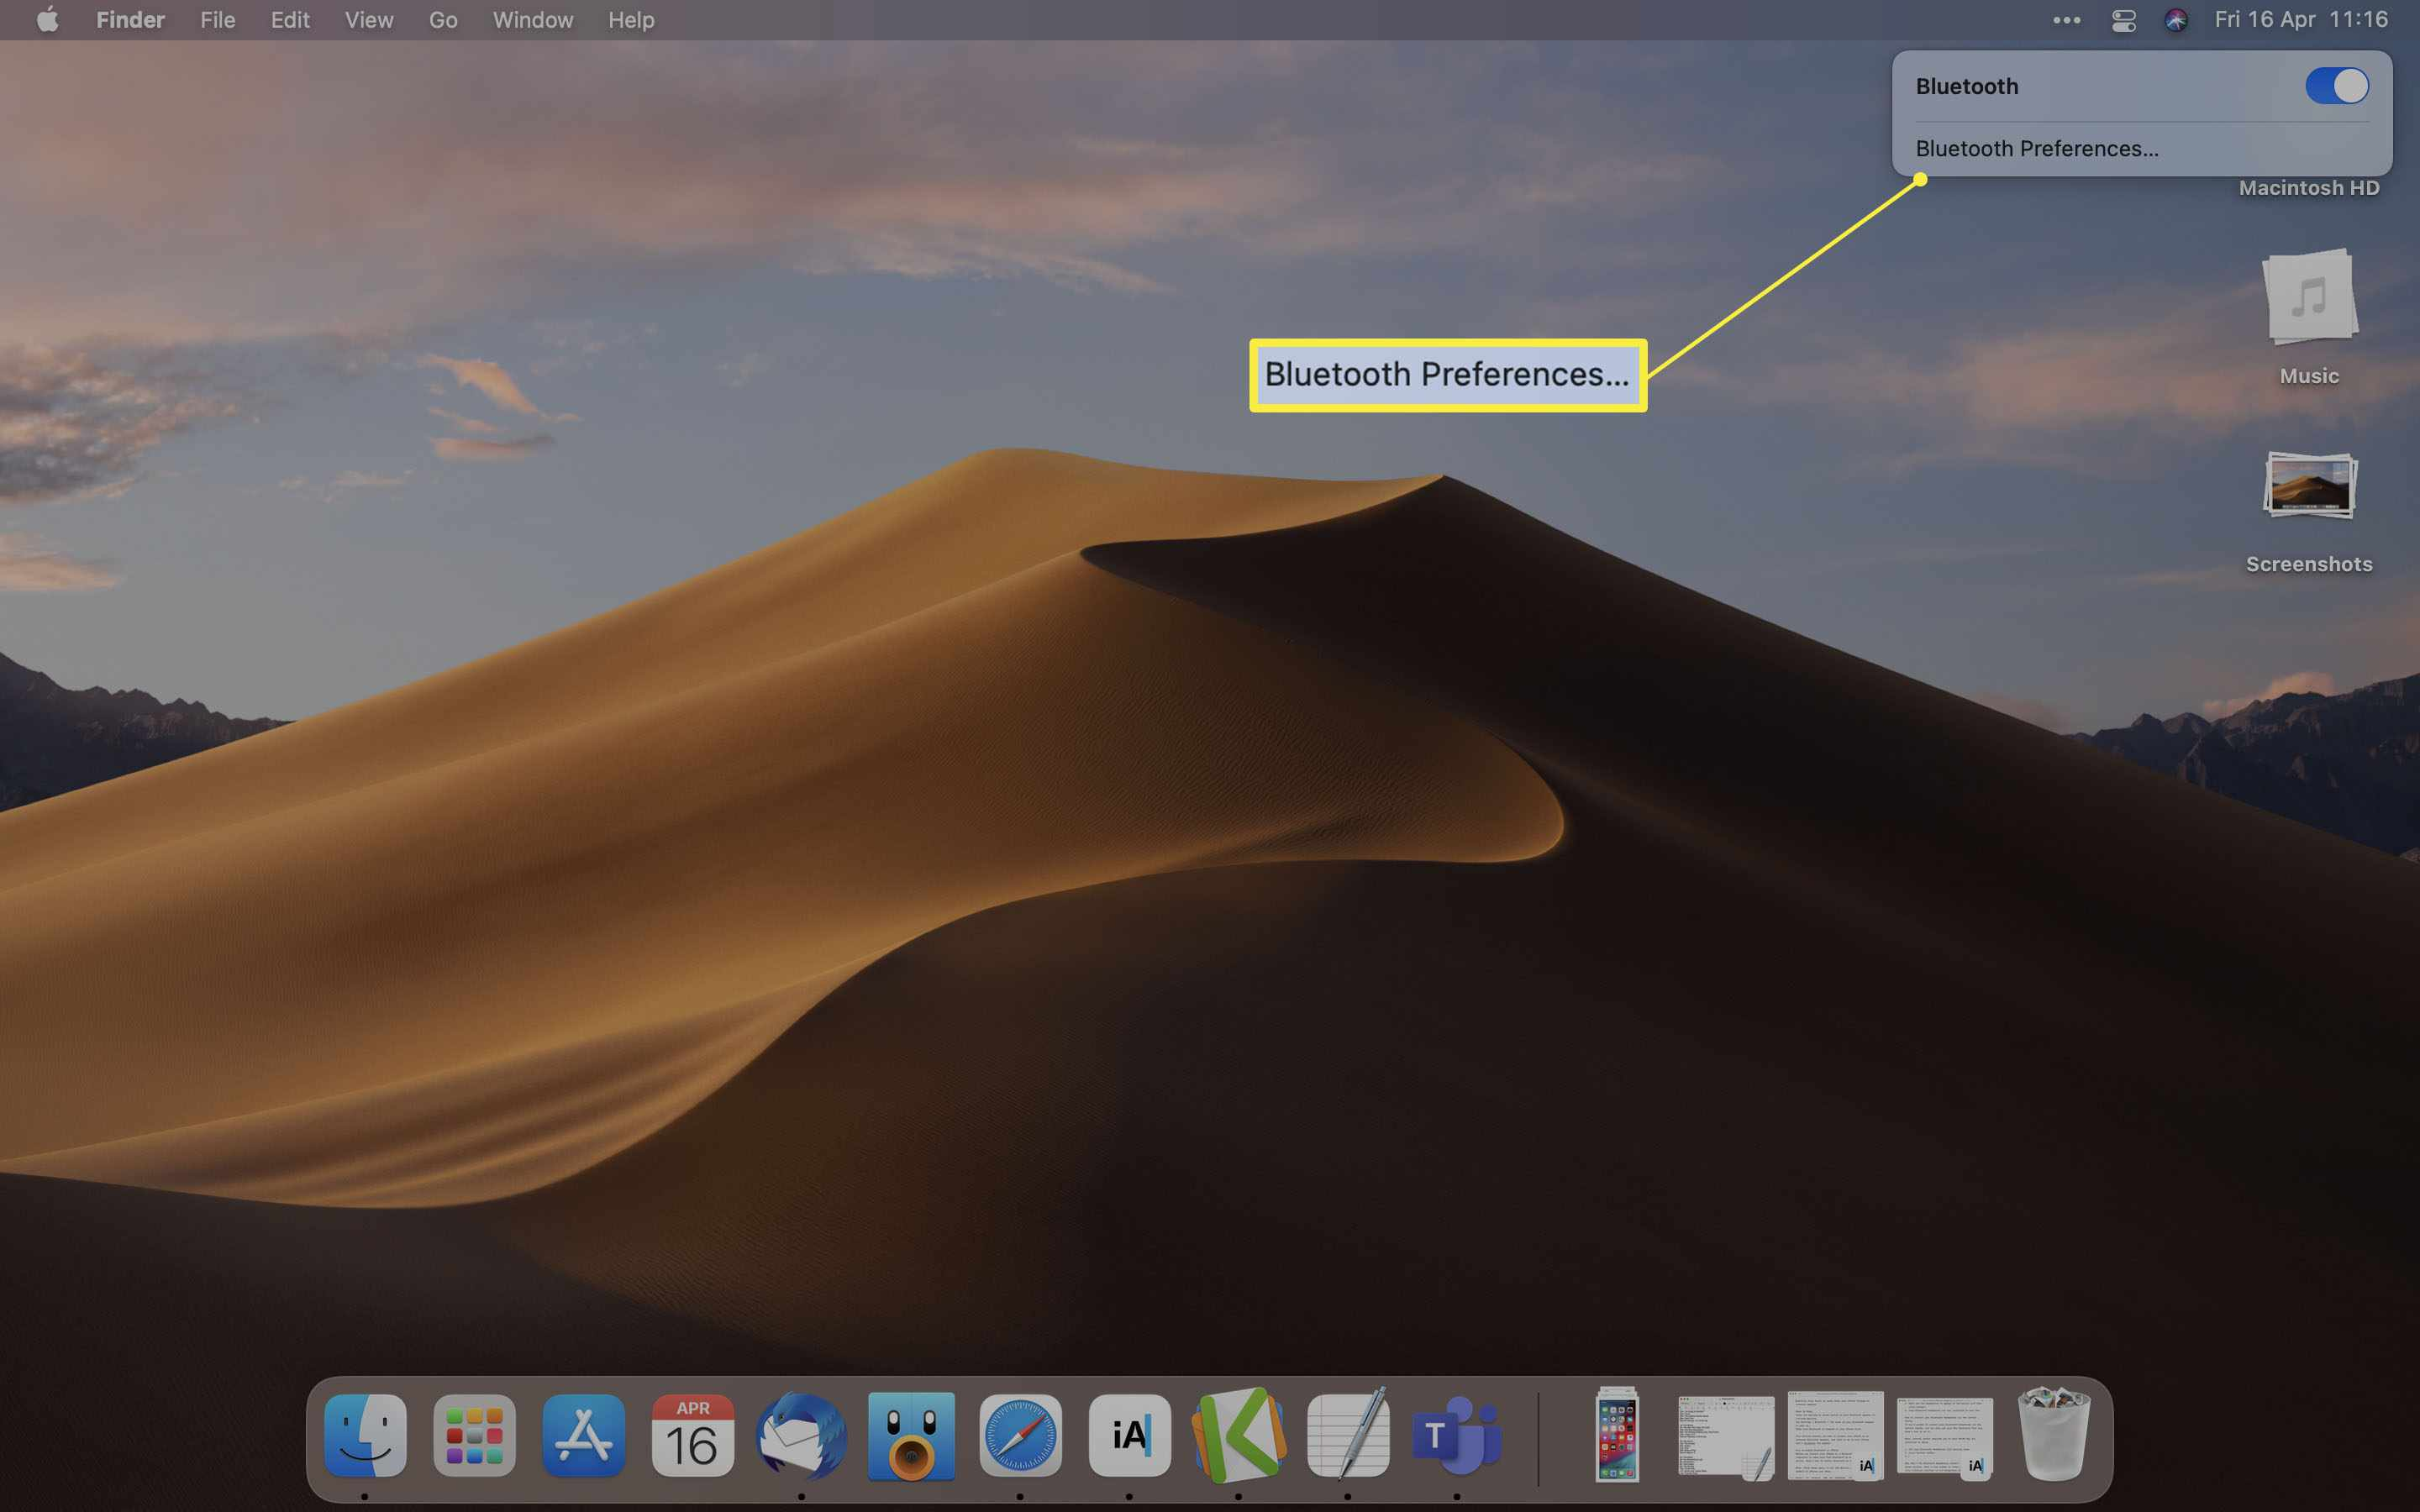 MacOS Control Center with Bluetooth Preferences highlighted